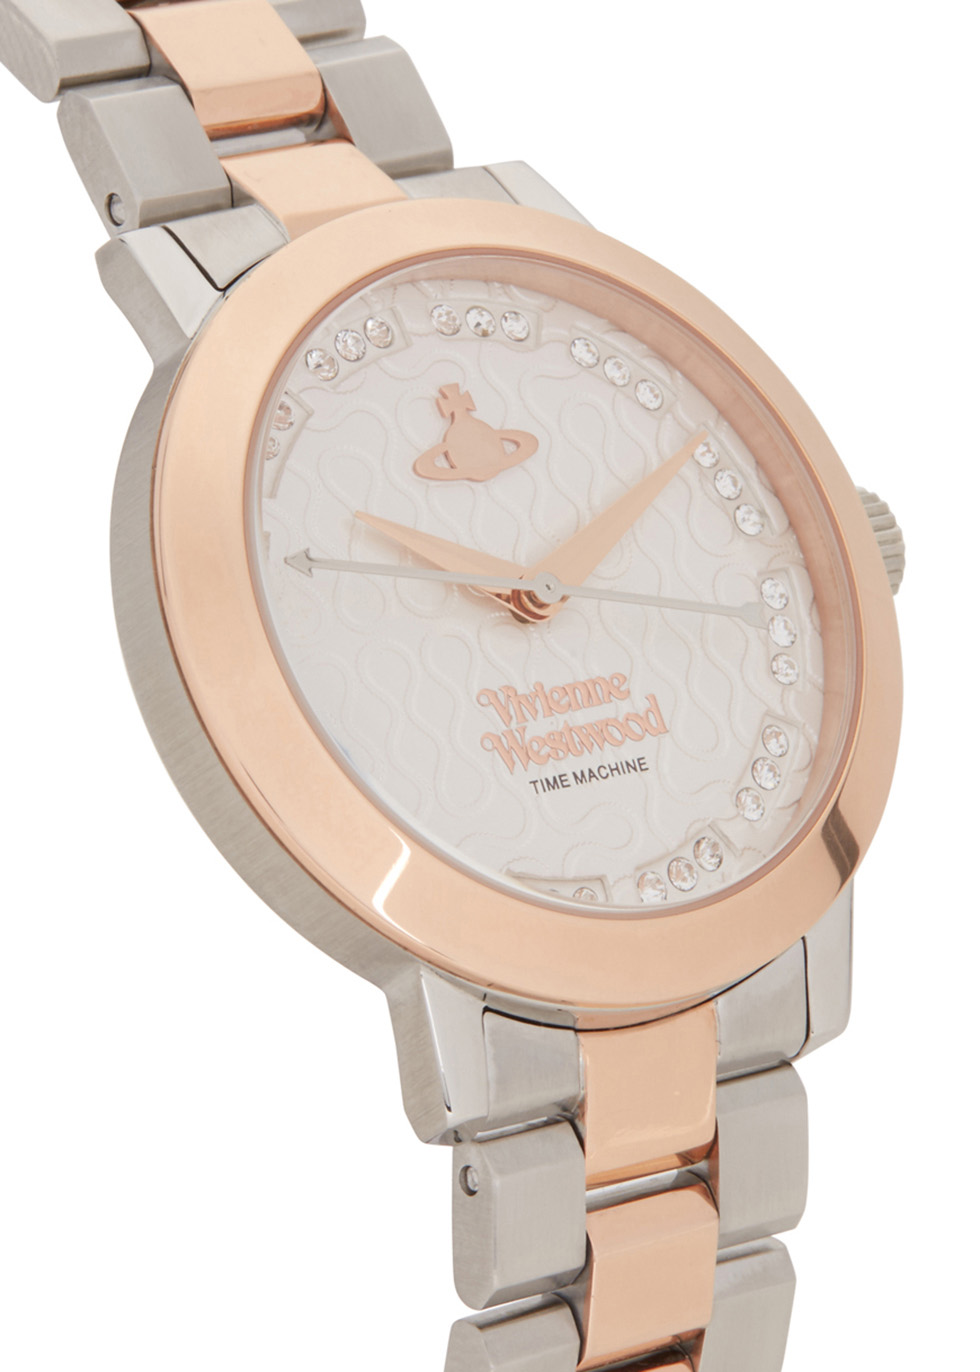 Bloomsbury silver and rose gold tone watch - Vivienne Westwood